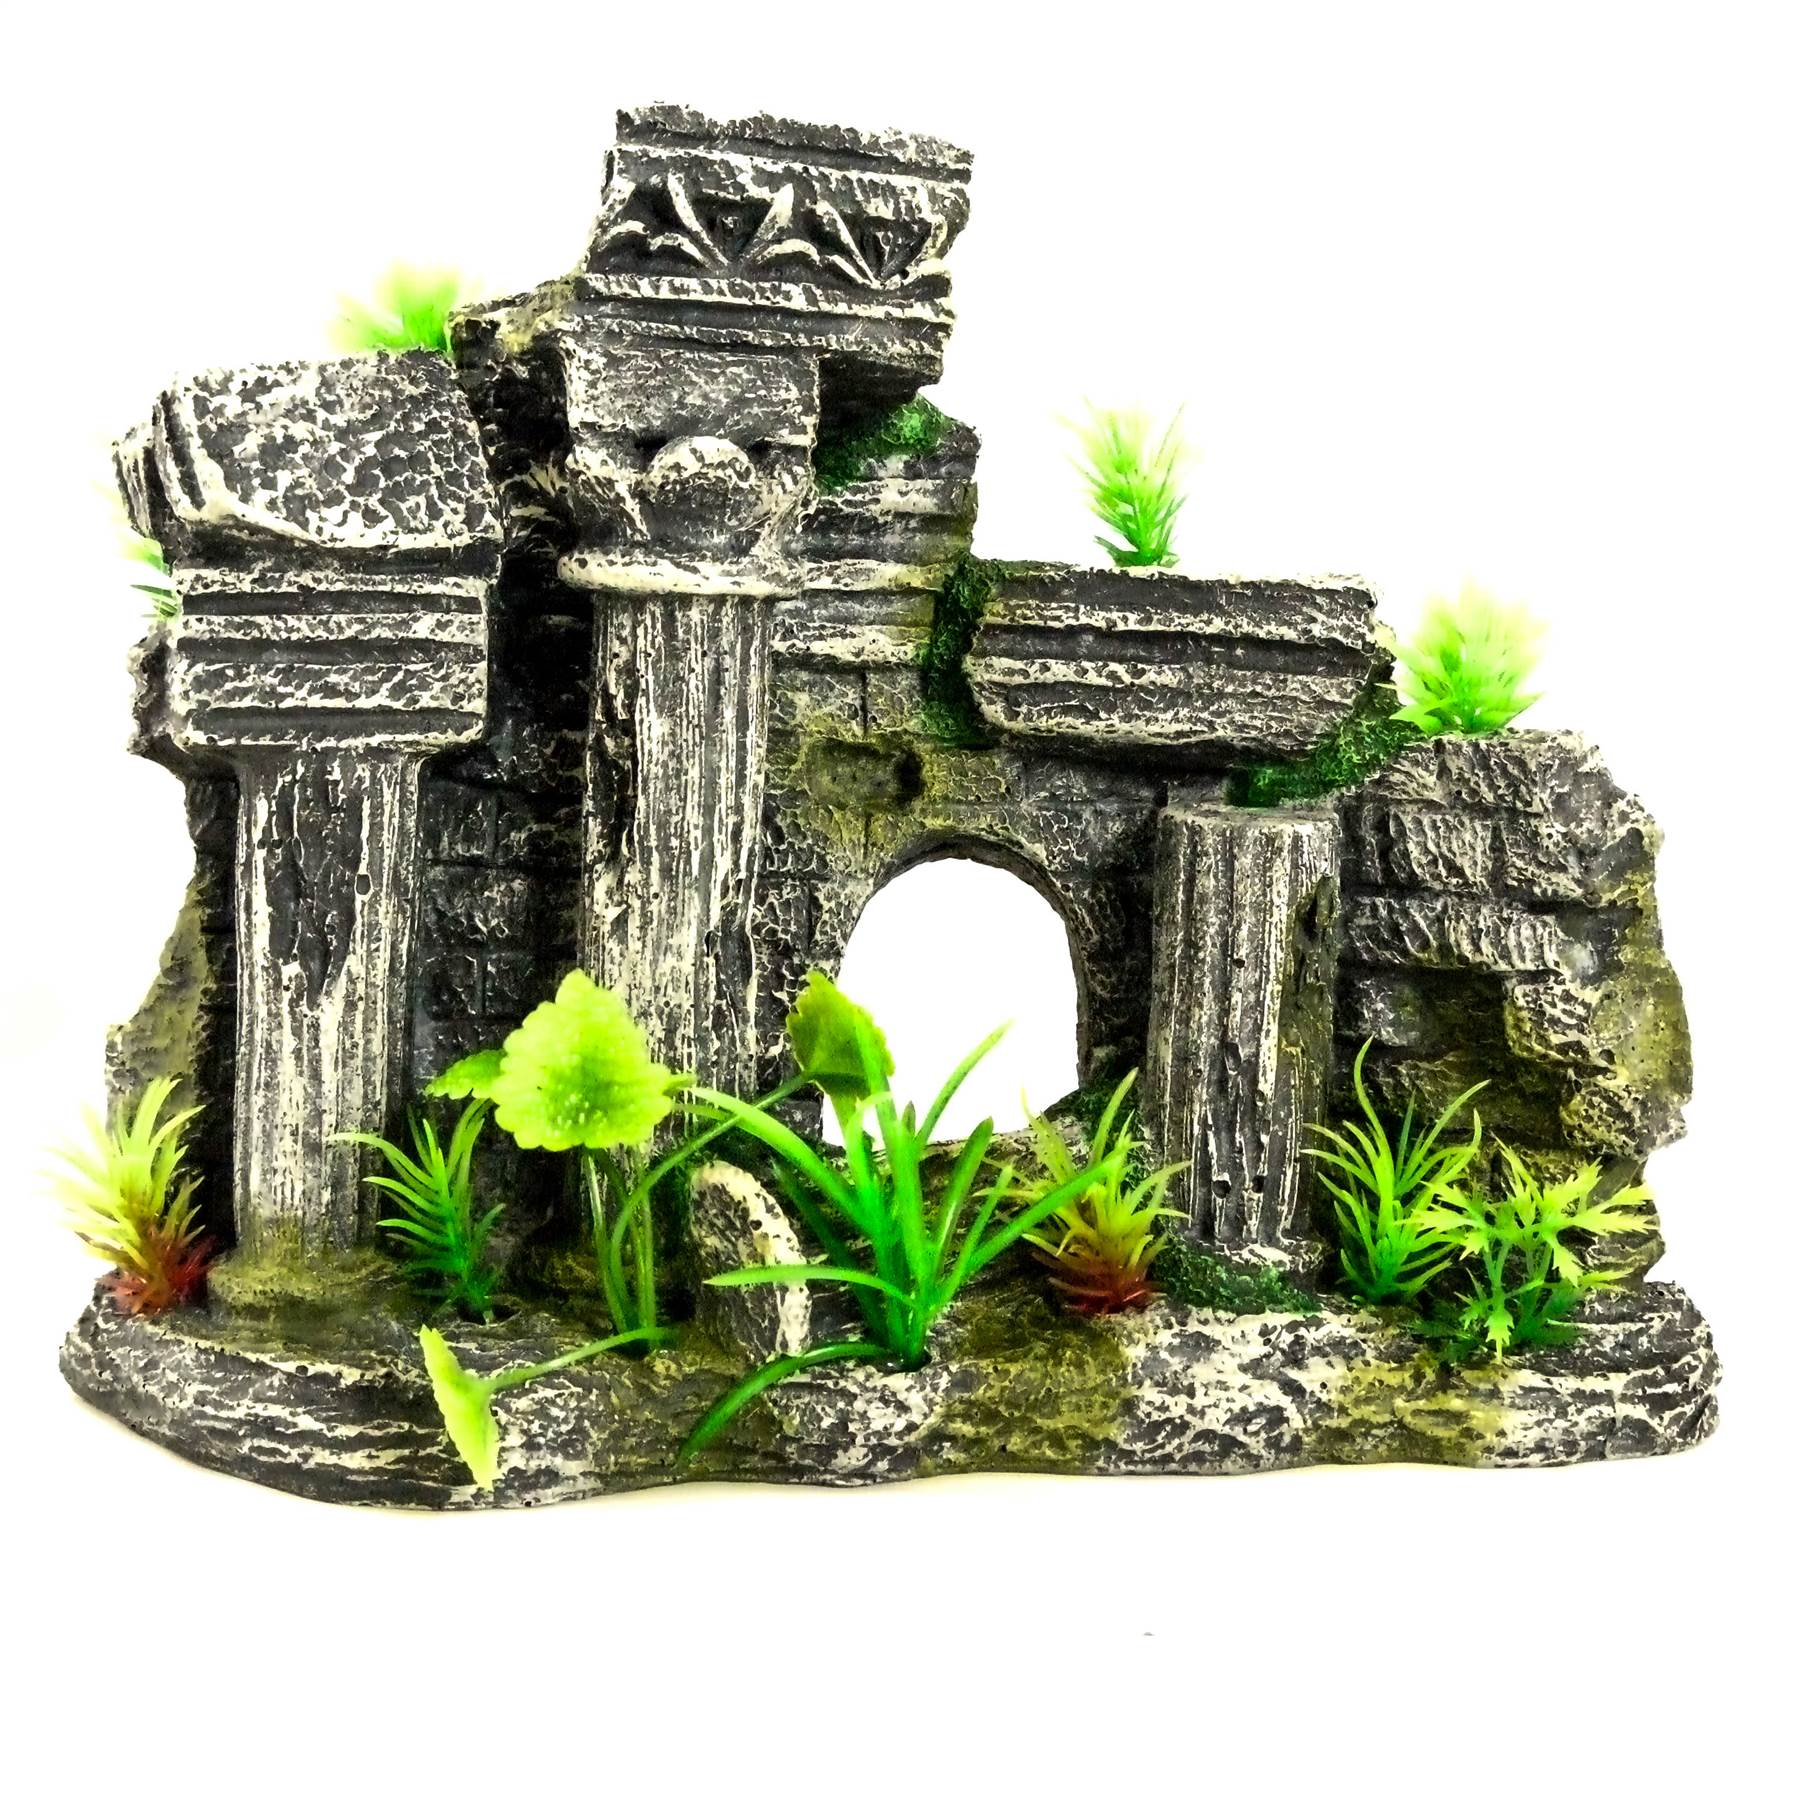 Atlantis ruin aquarium ornament fish tank decoration for Aquarium decoration ornaments